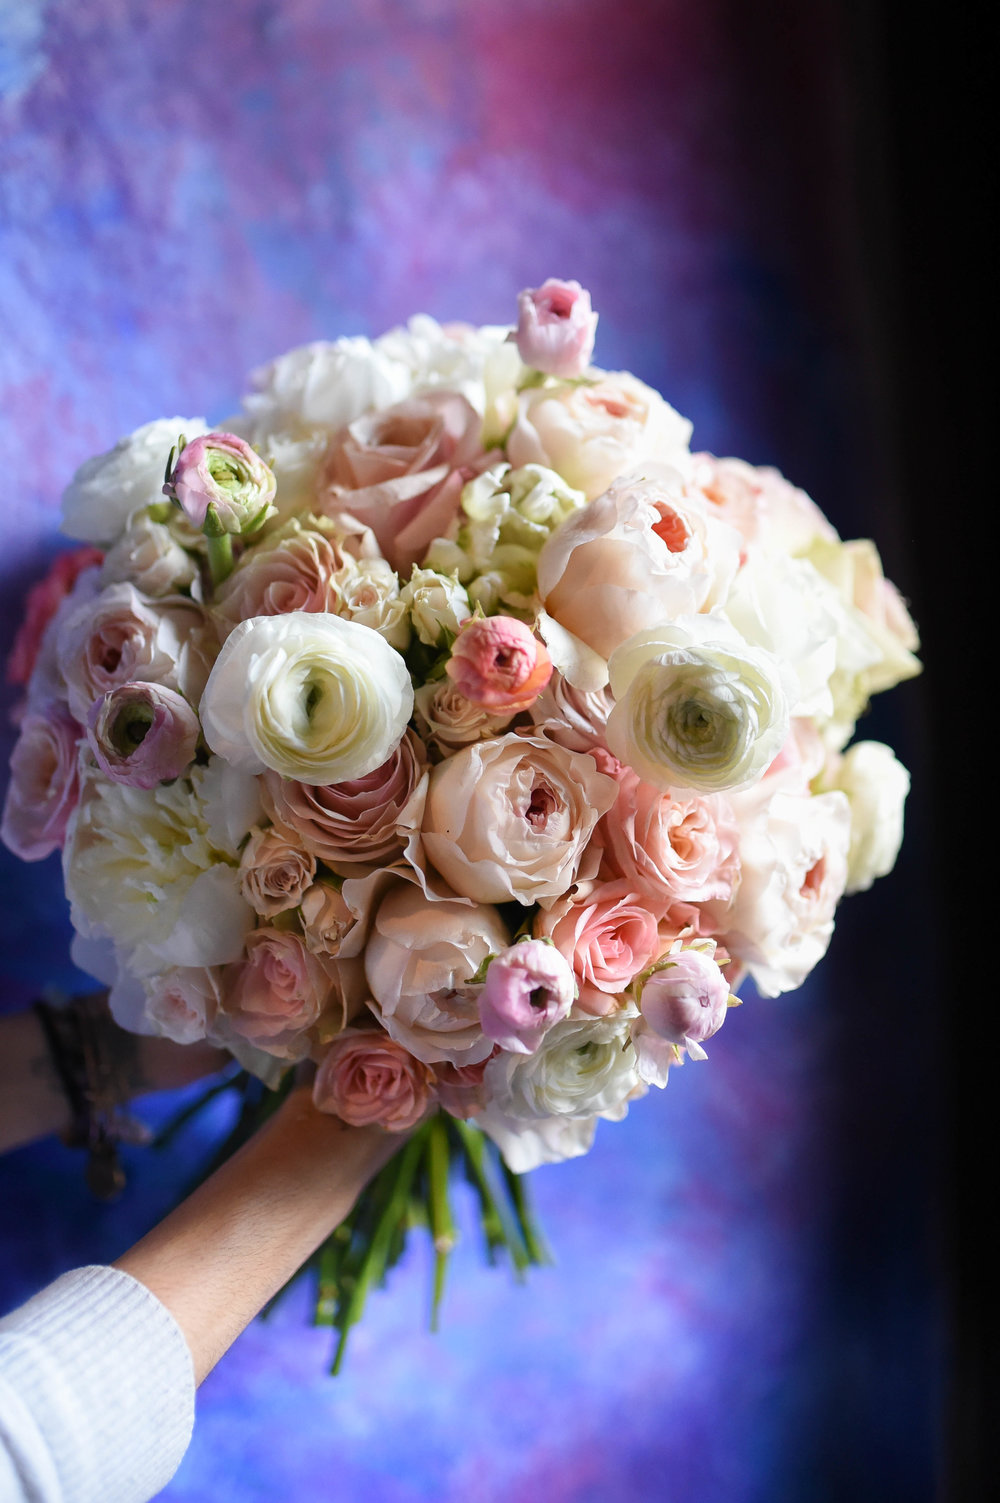 The monumental bridal bouquet is filled with soft pink and white blooms